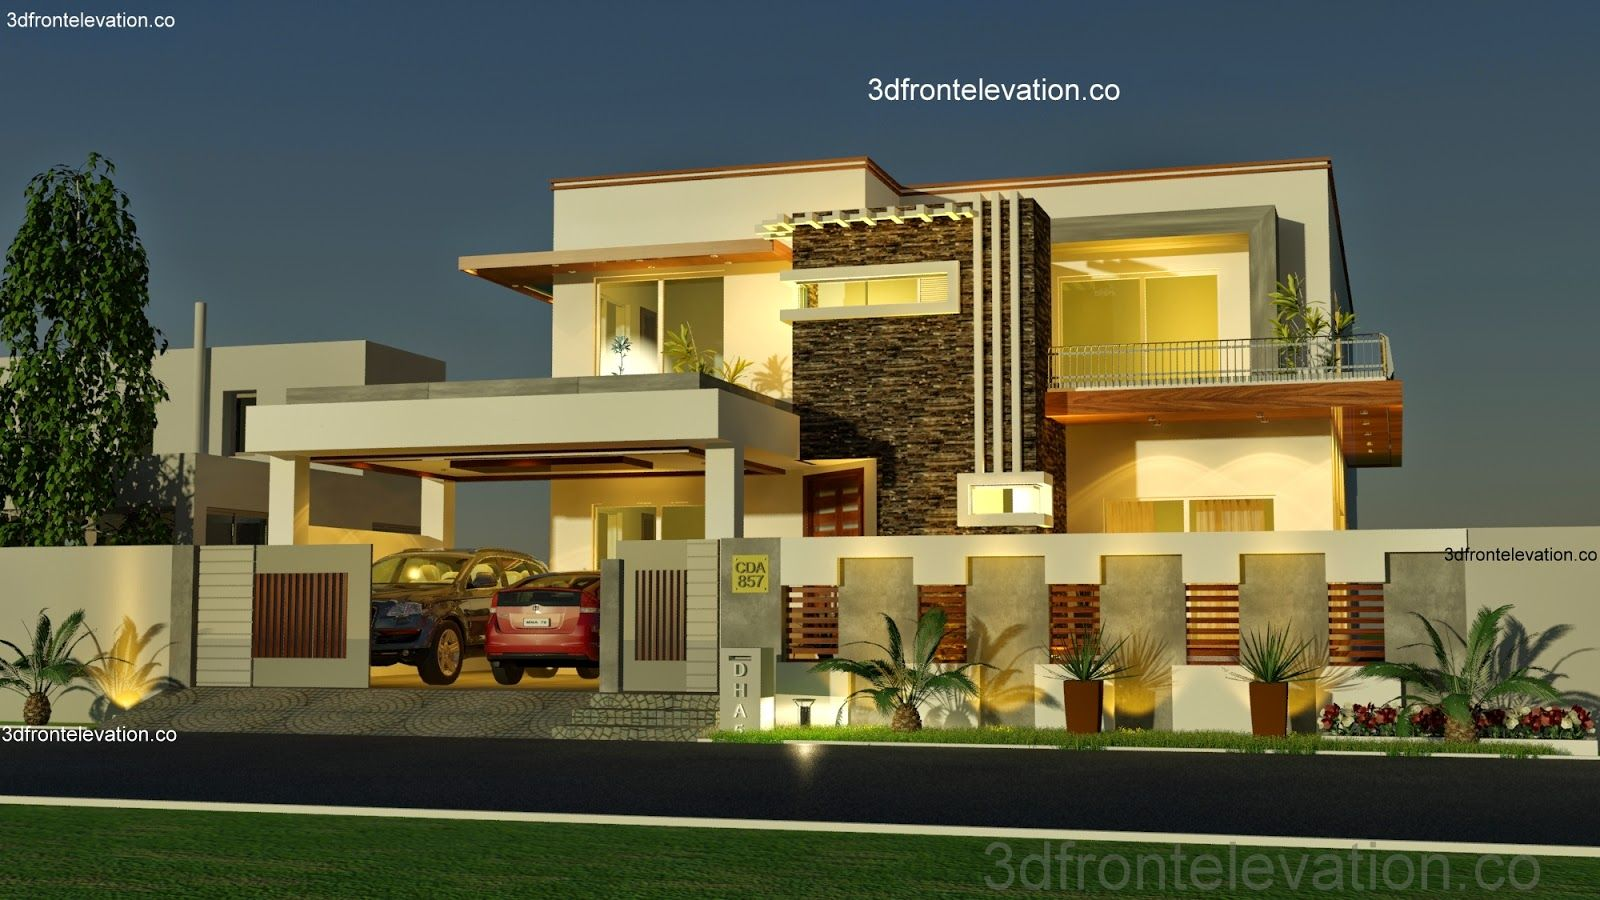 Modern house front elevation designs buscar con google for Images of front view of beautiful modern houses